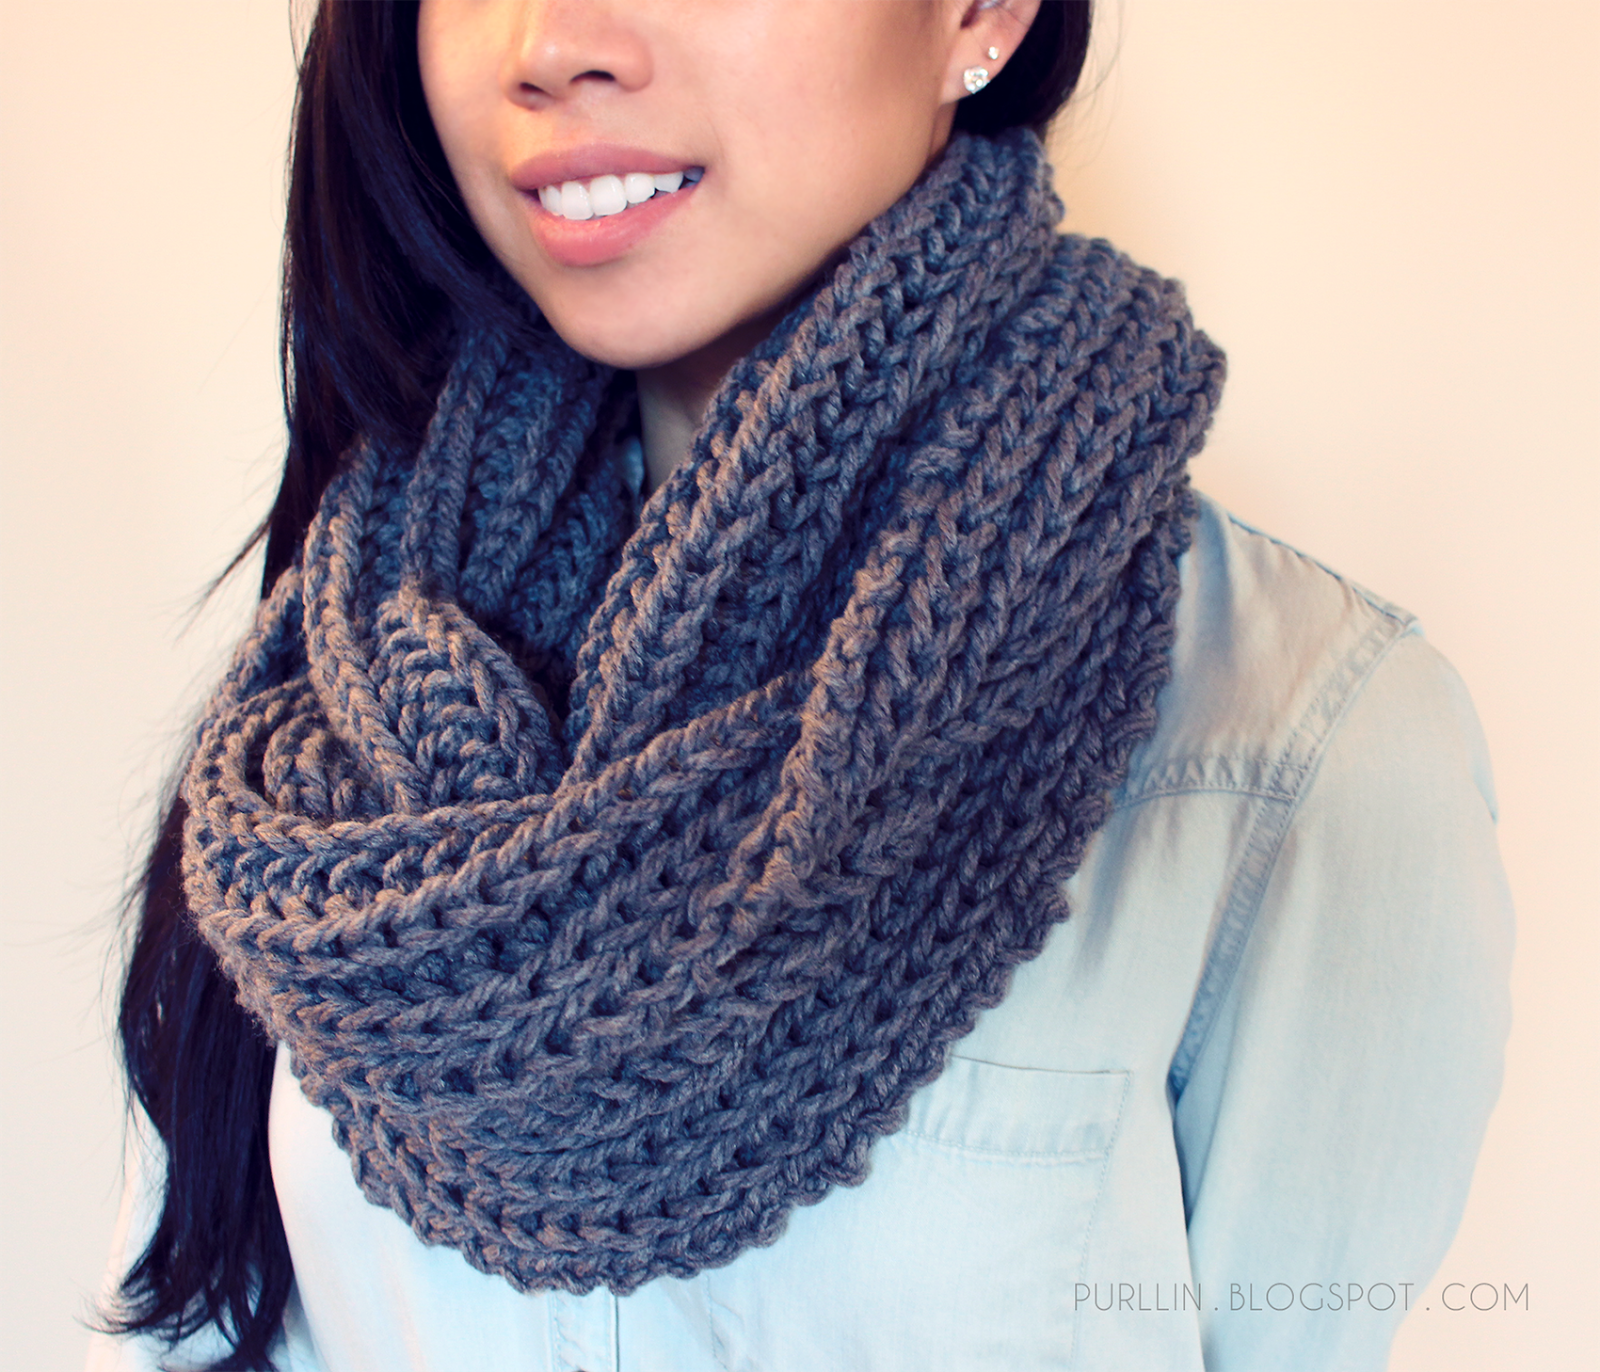 Beginner Knitting Patterns Scarves : FREE easy beginner knitting pattern for a chunky knit grey infinity circle sc...